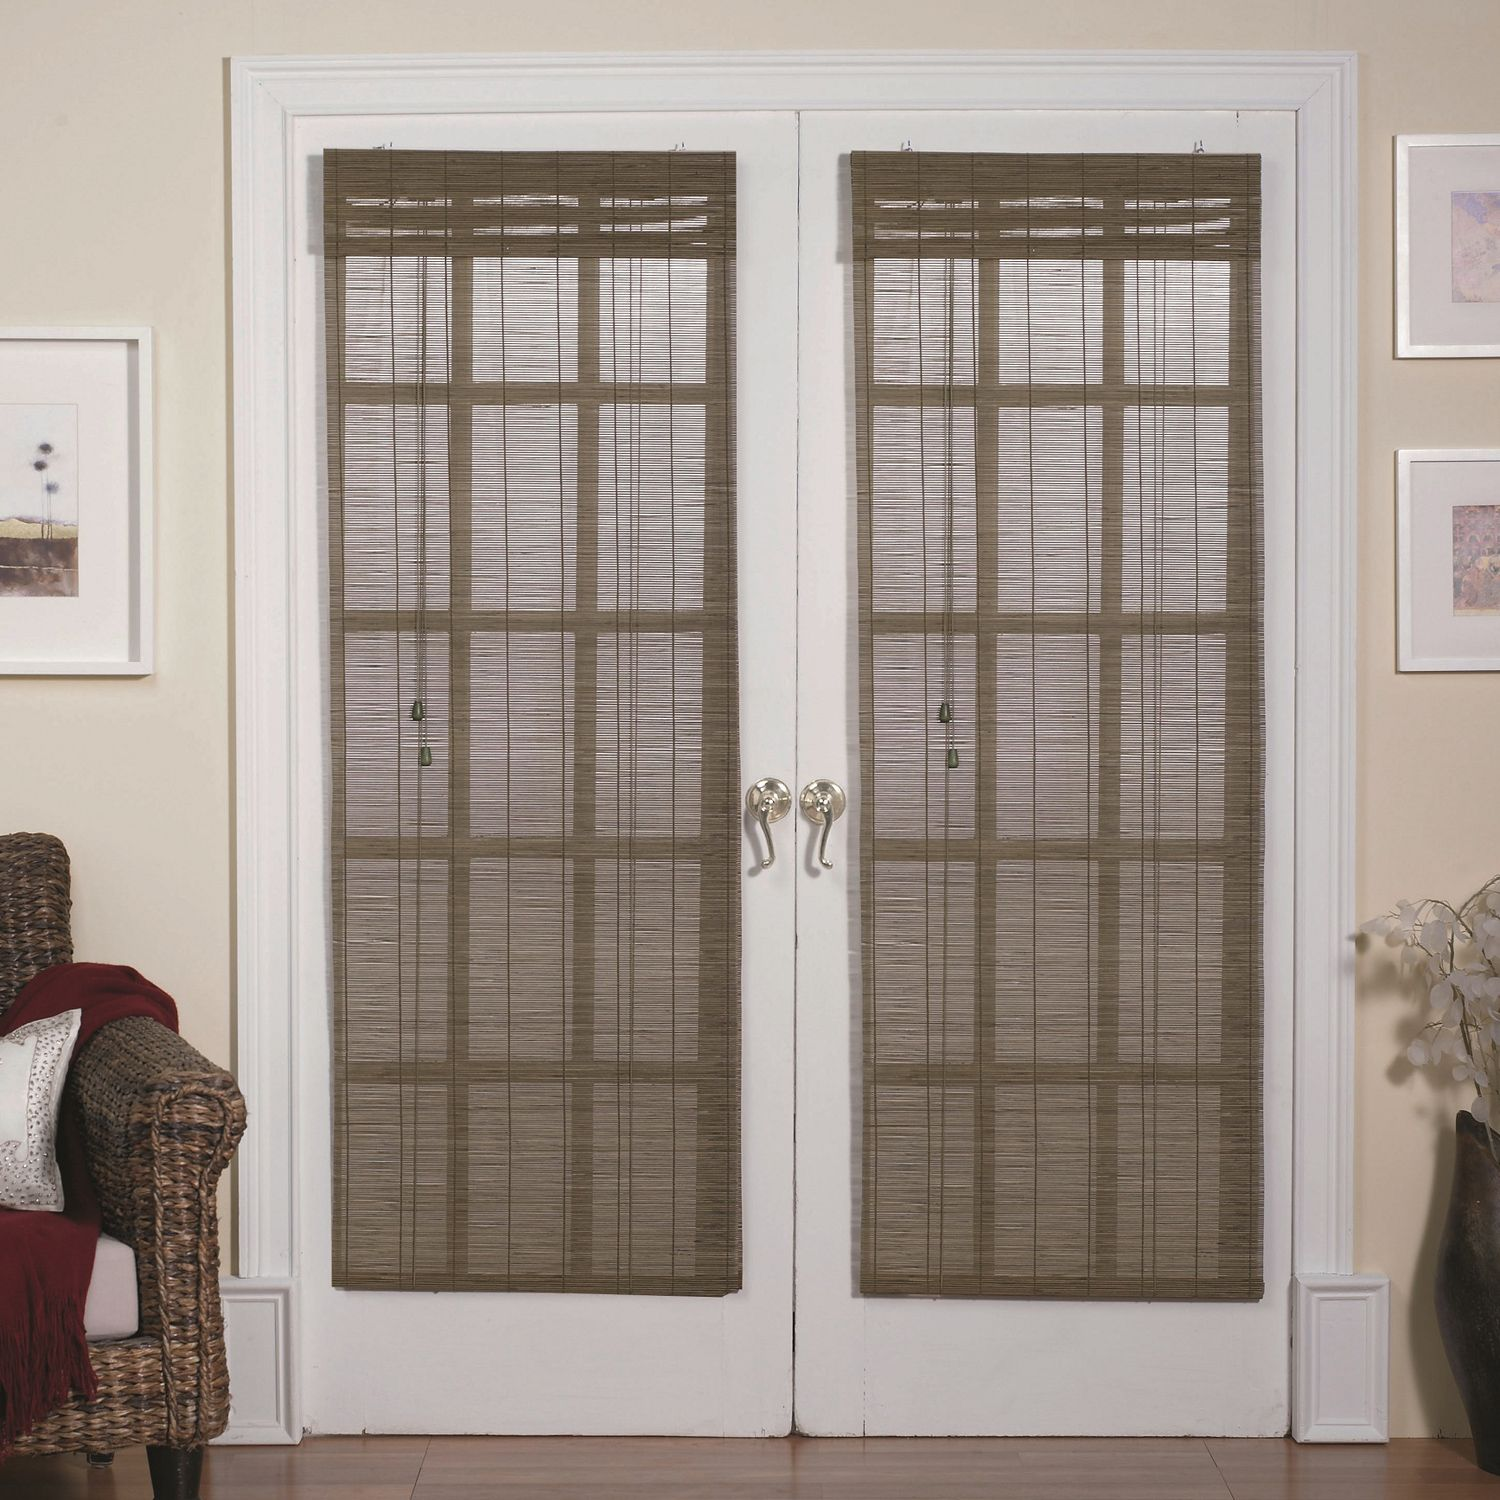 Bamboo Blind For Metal Doors Google Search For The Home